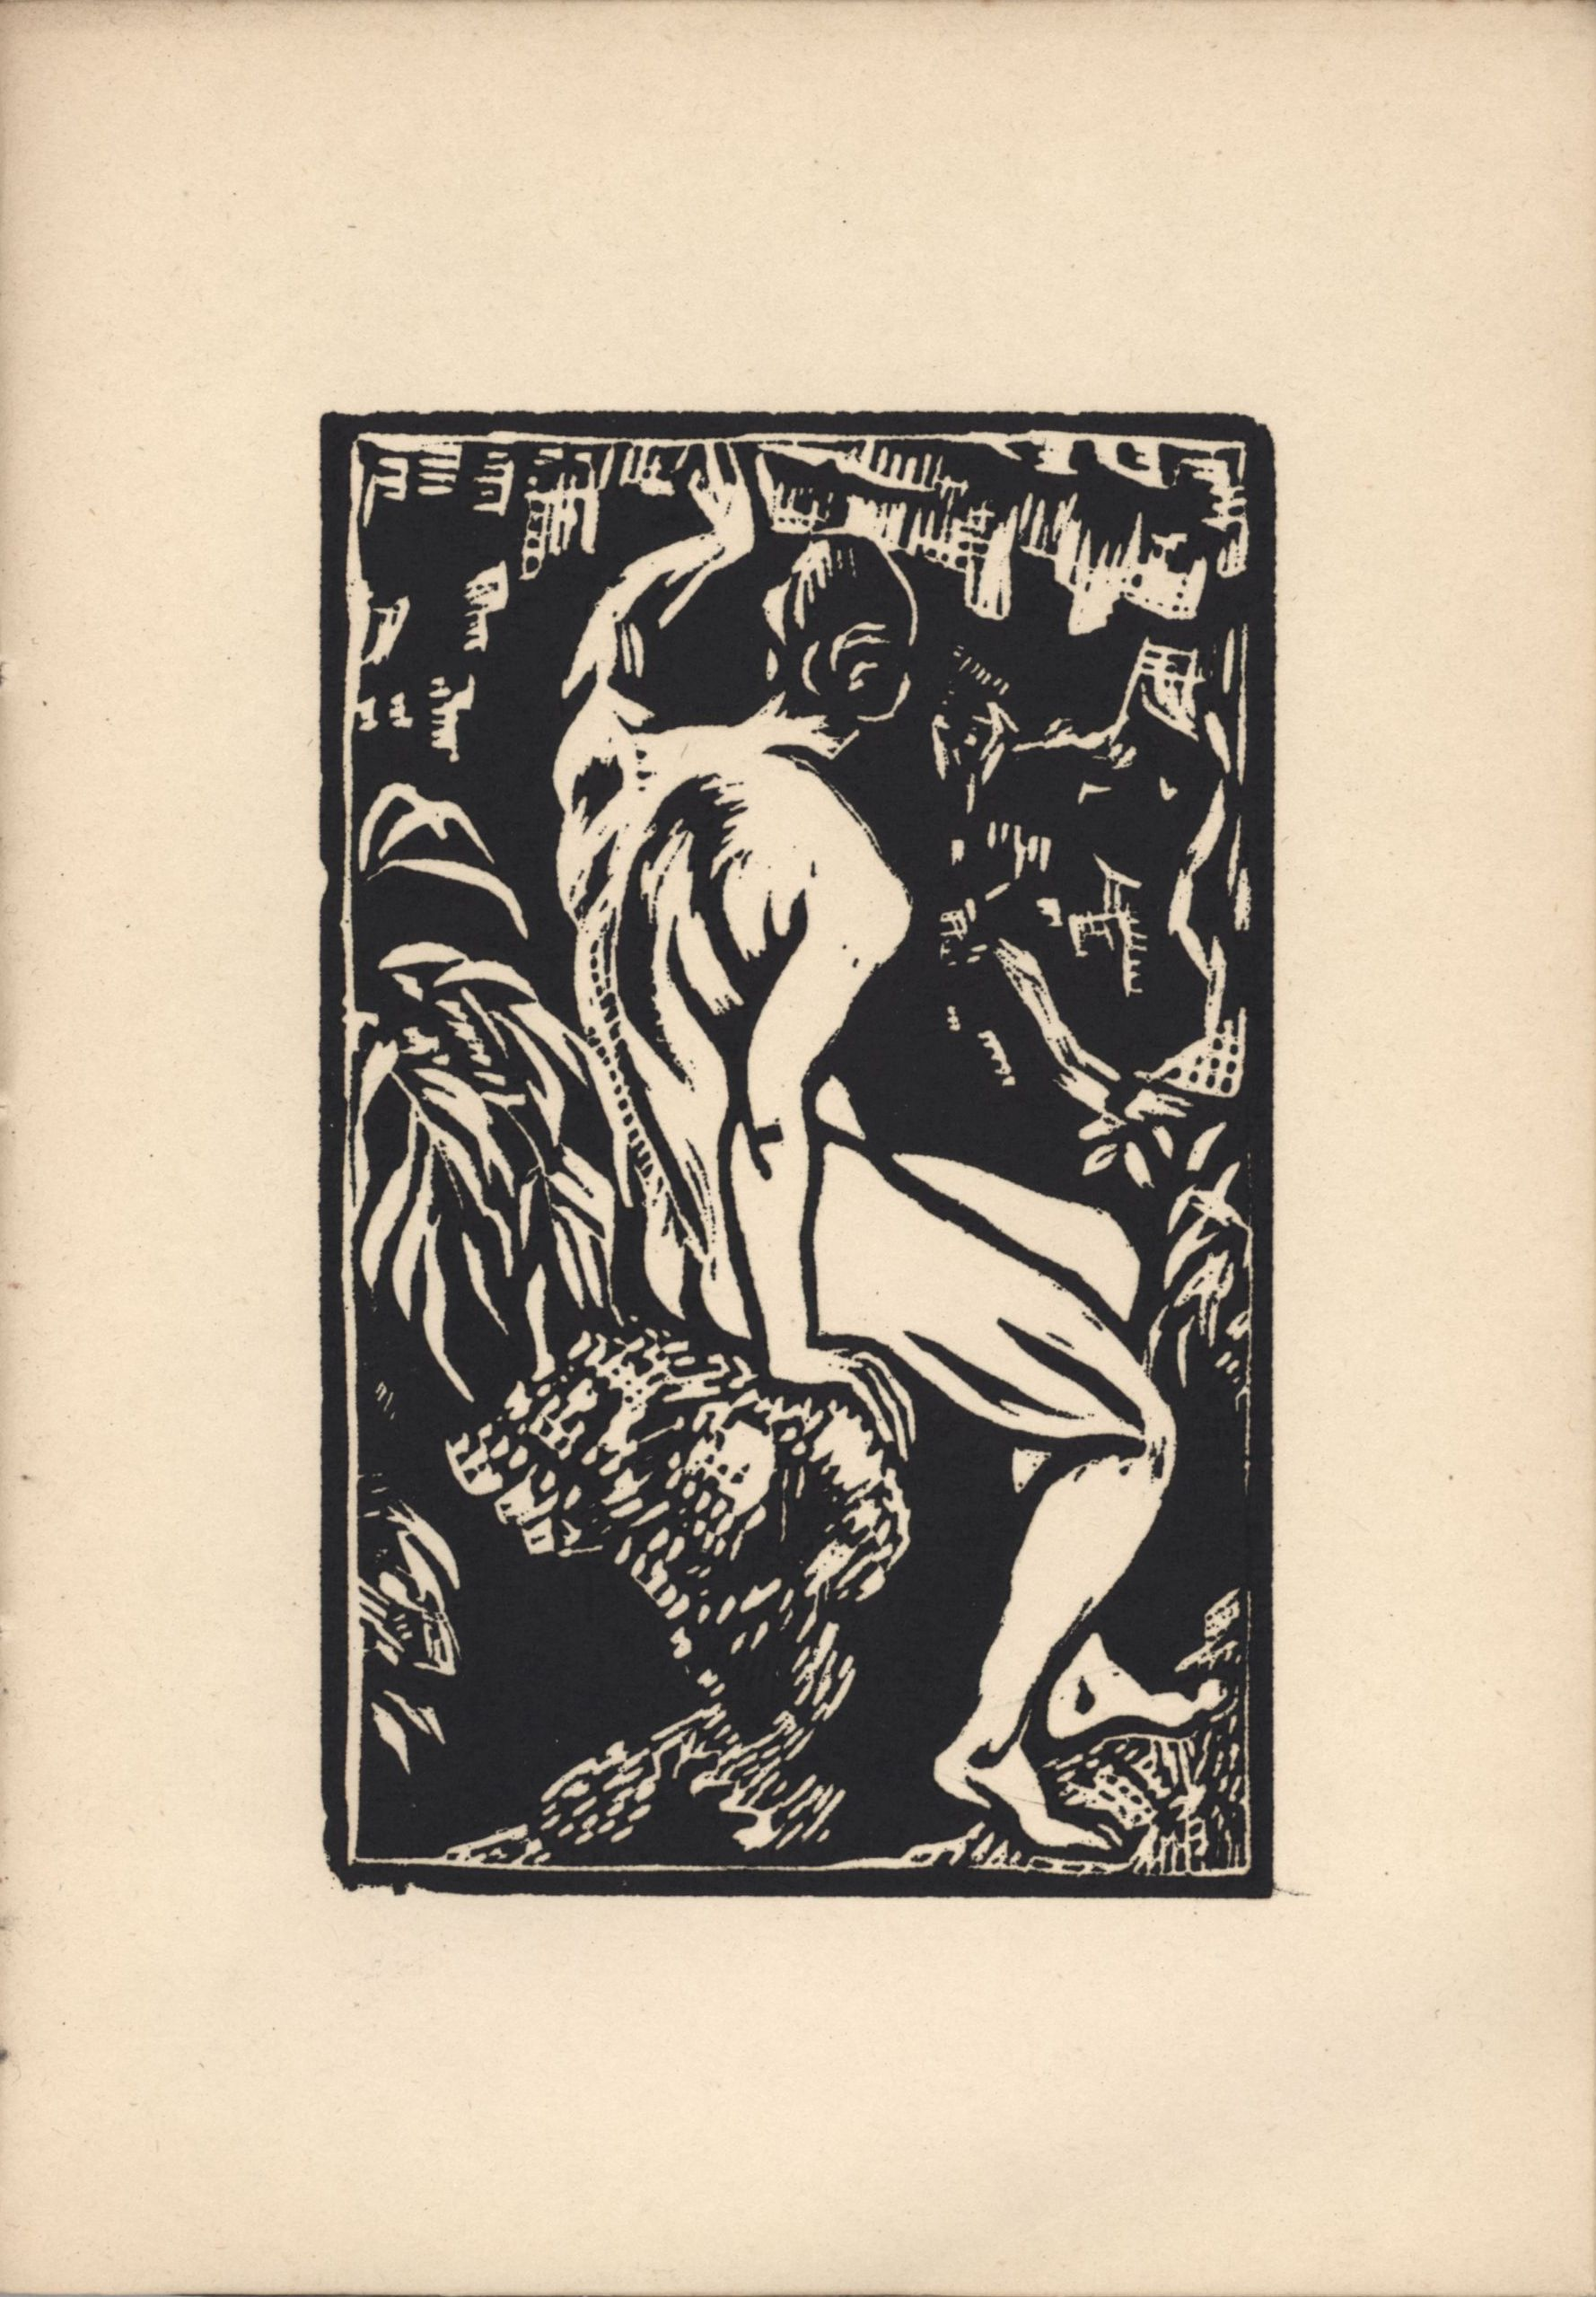 Fourth woodcut from Roger Fry's 'Twelve Original Woodcuts'.